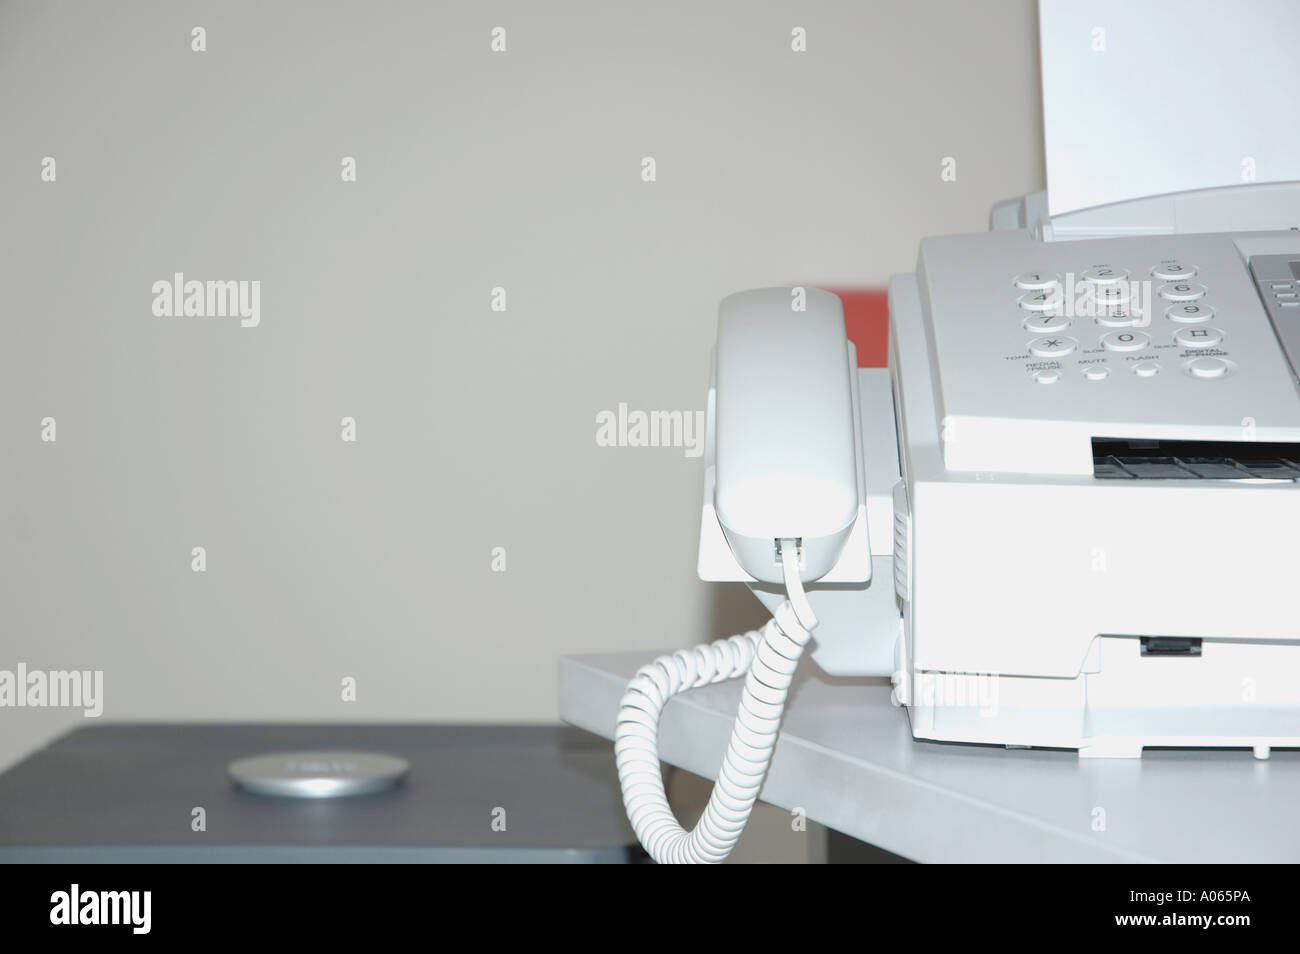 Section of a facsimile machine seen at close up - Stock Image